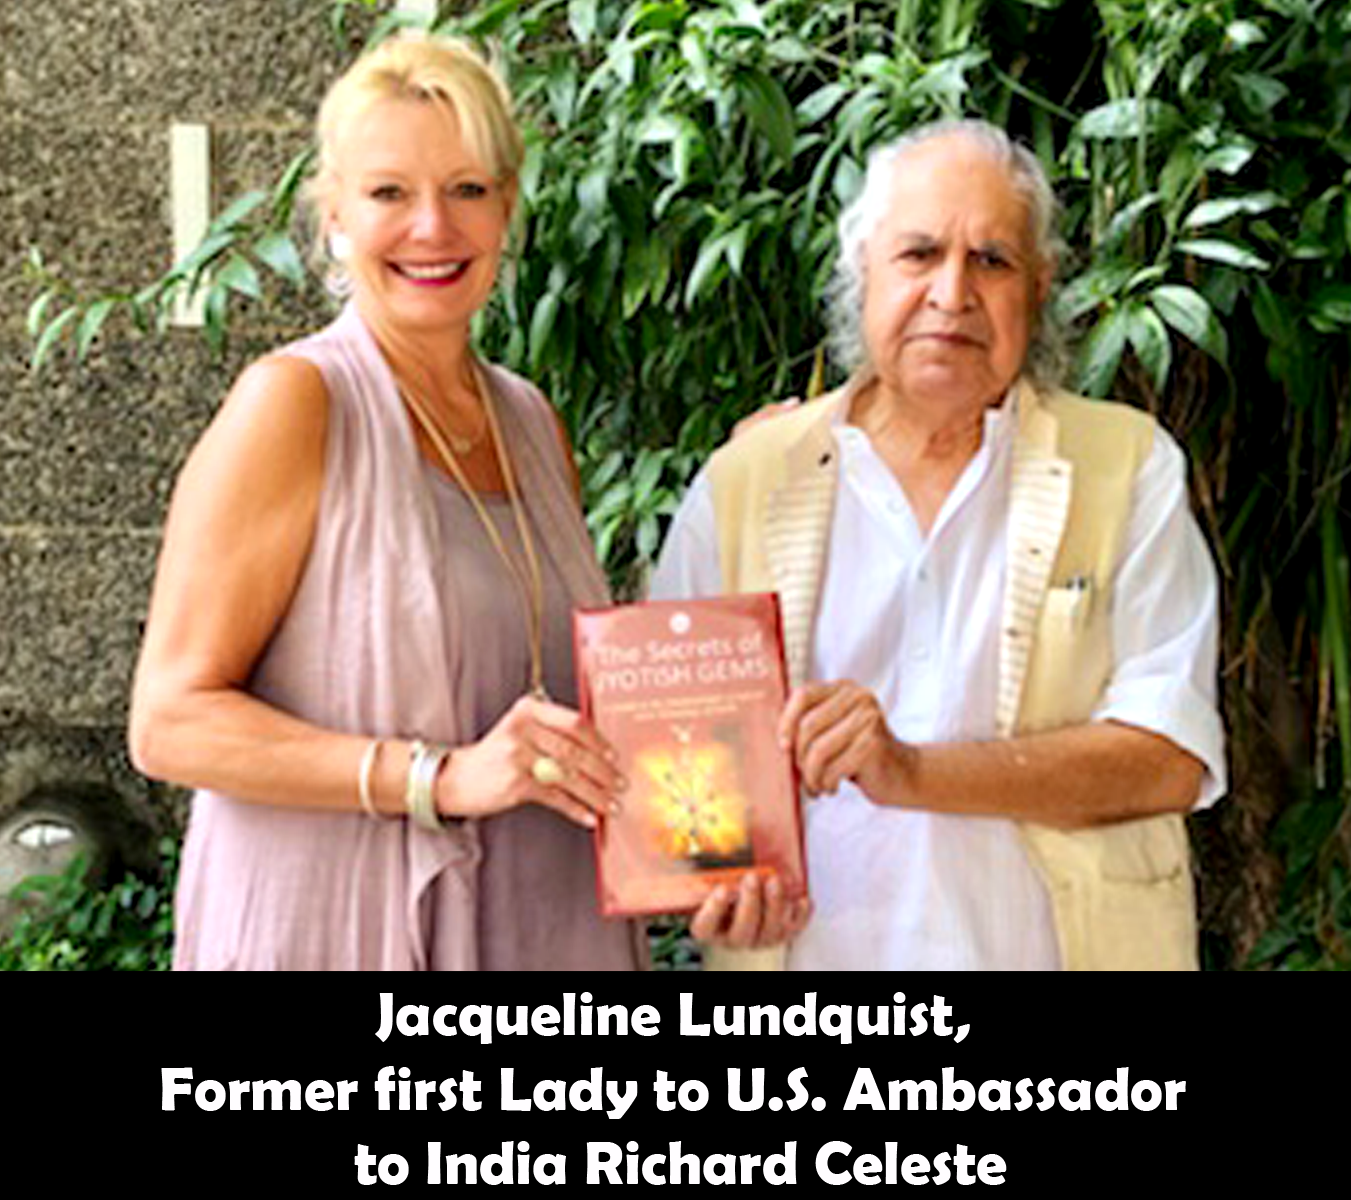 Jacqueline Lundquist, Former first Lady to U.S. Ambassador to India Richard Celeste releasing the Secrets of Jyotish Gems